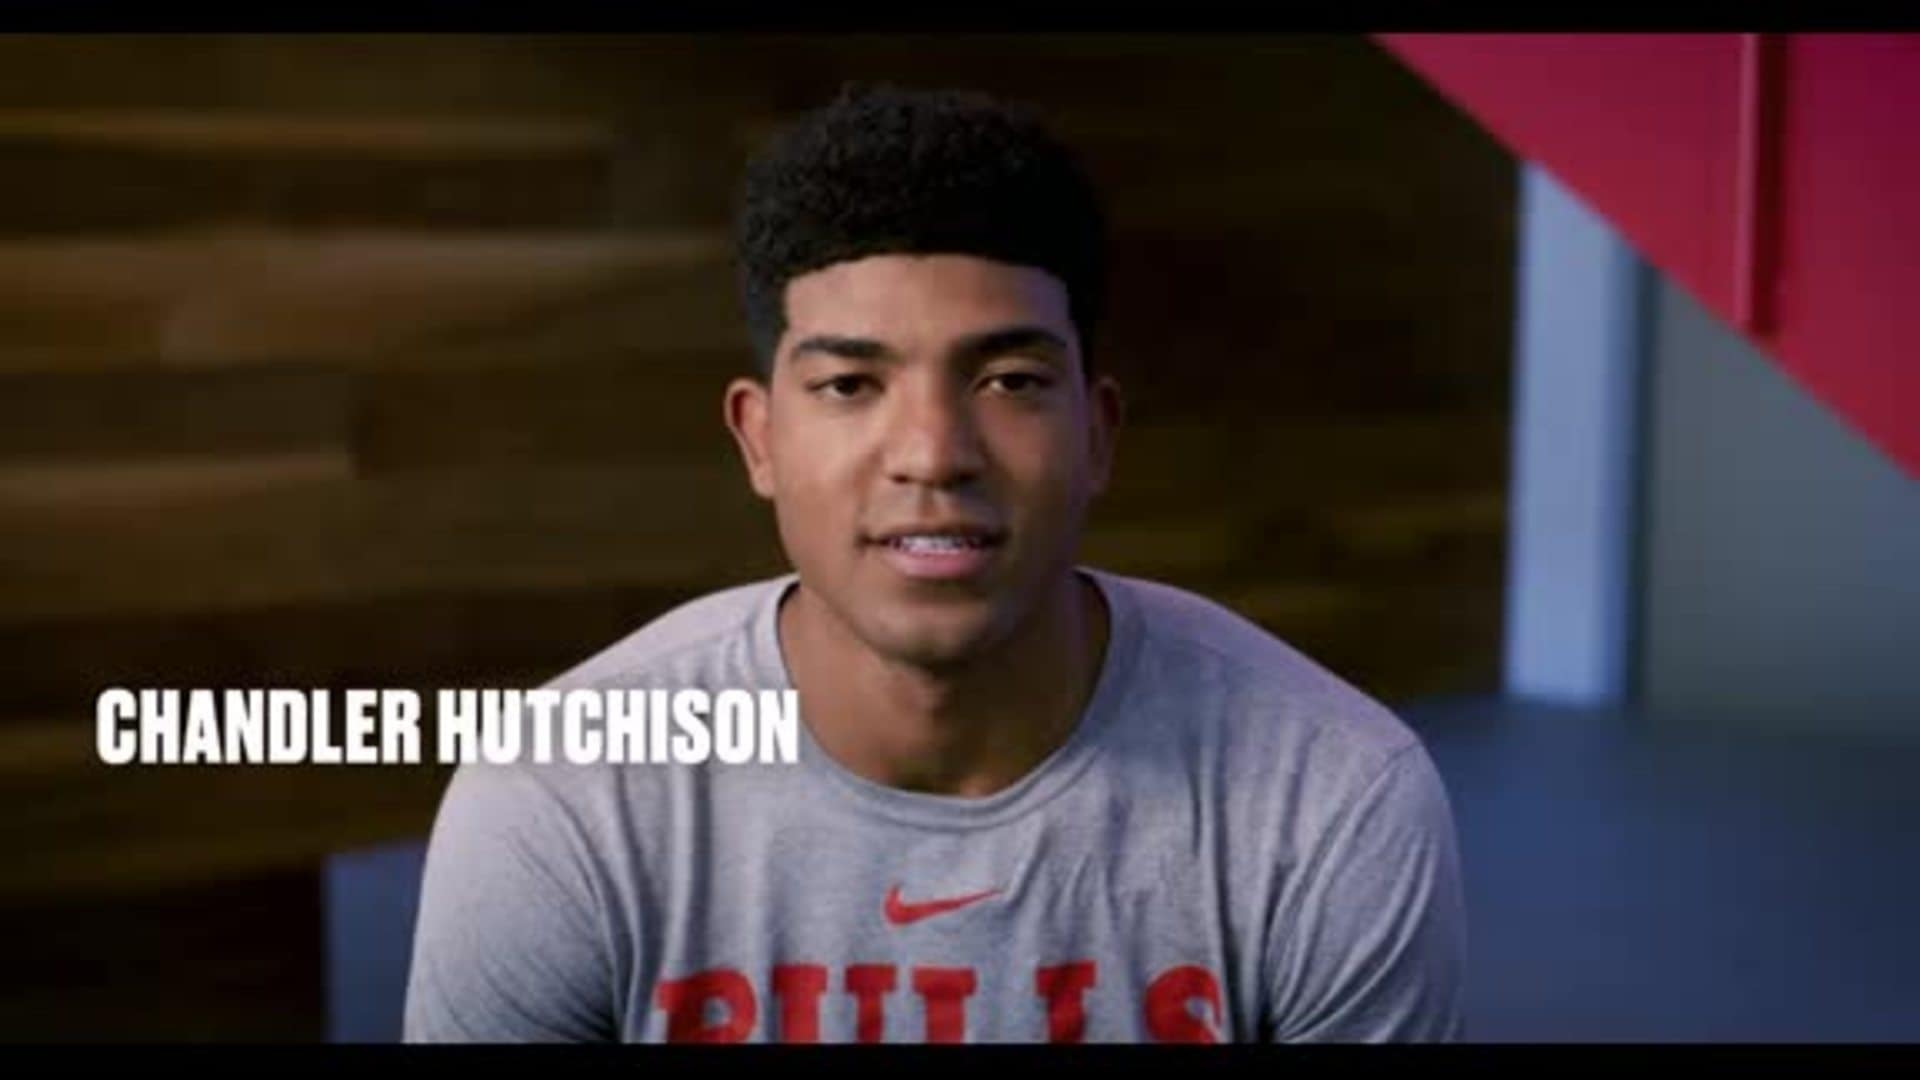 Special Message from Chandler Hutchison